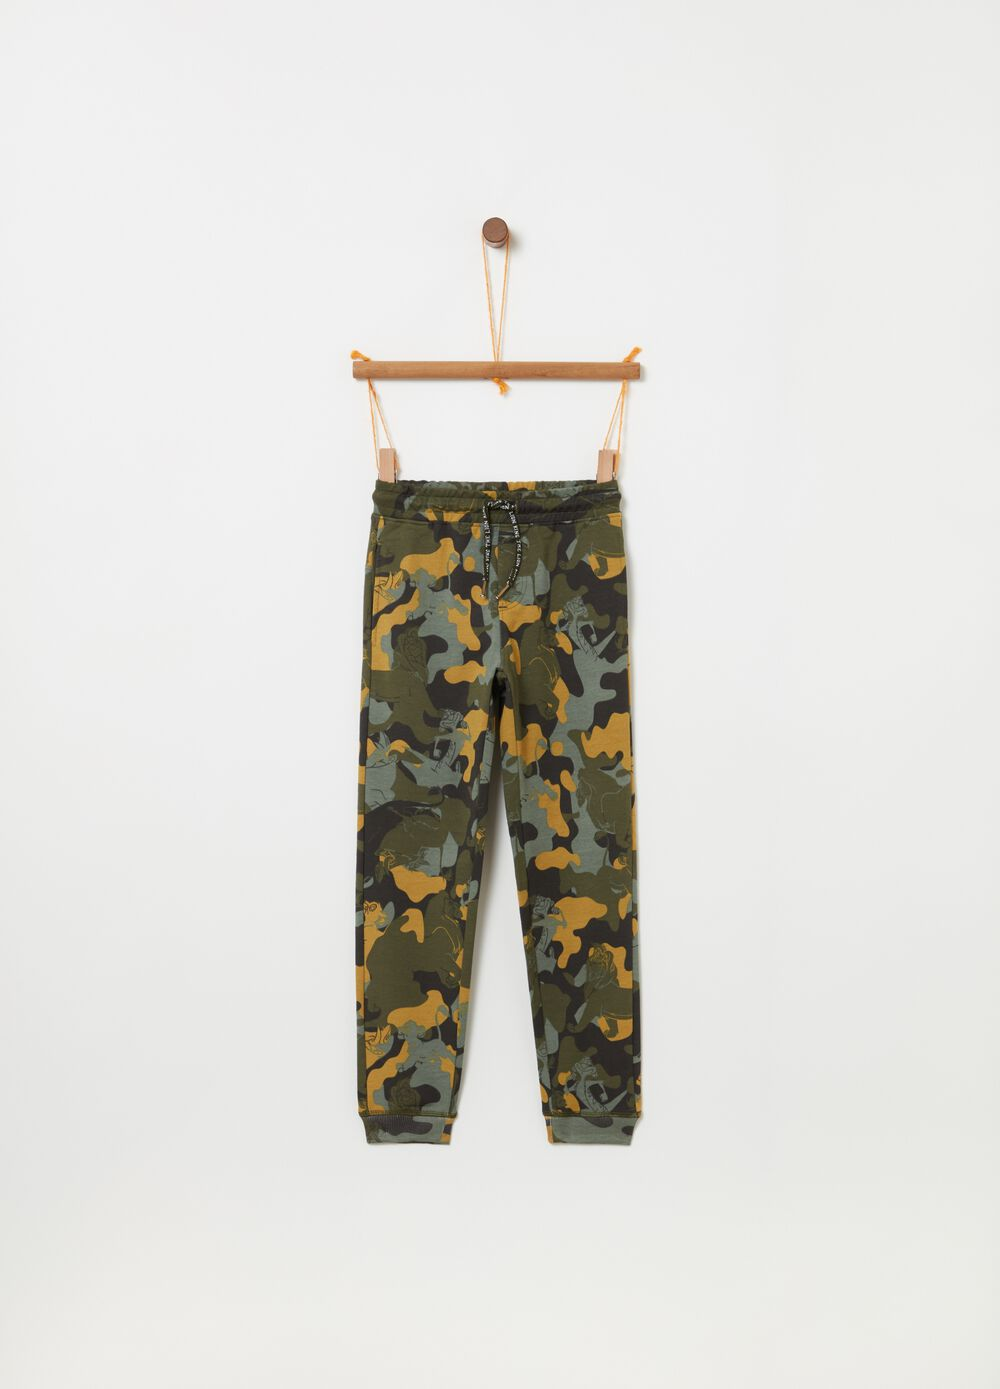 Trousers with Lion King drawstring